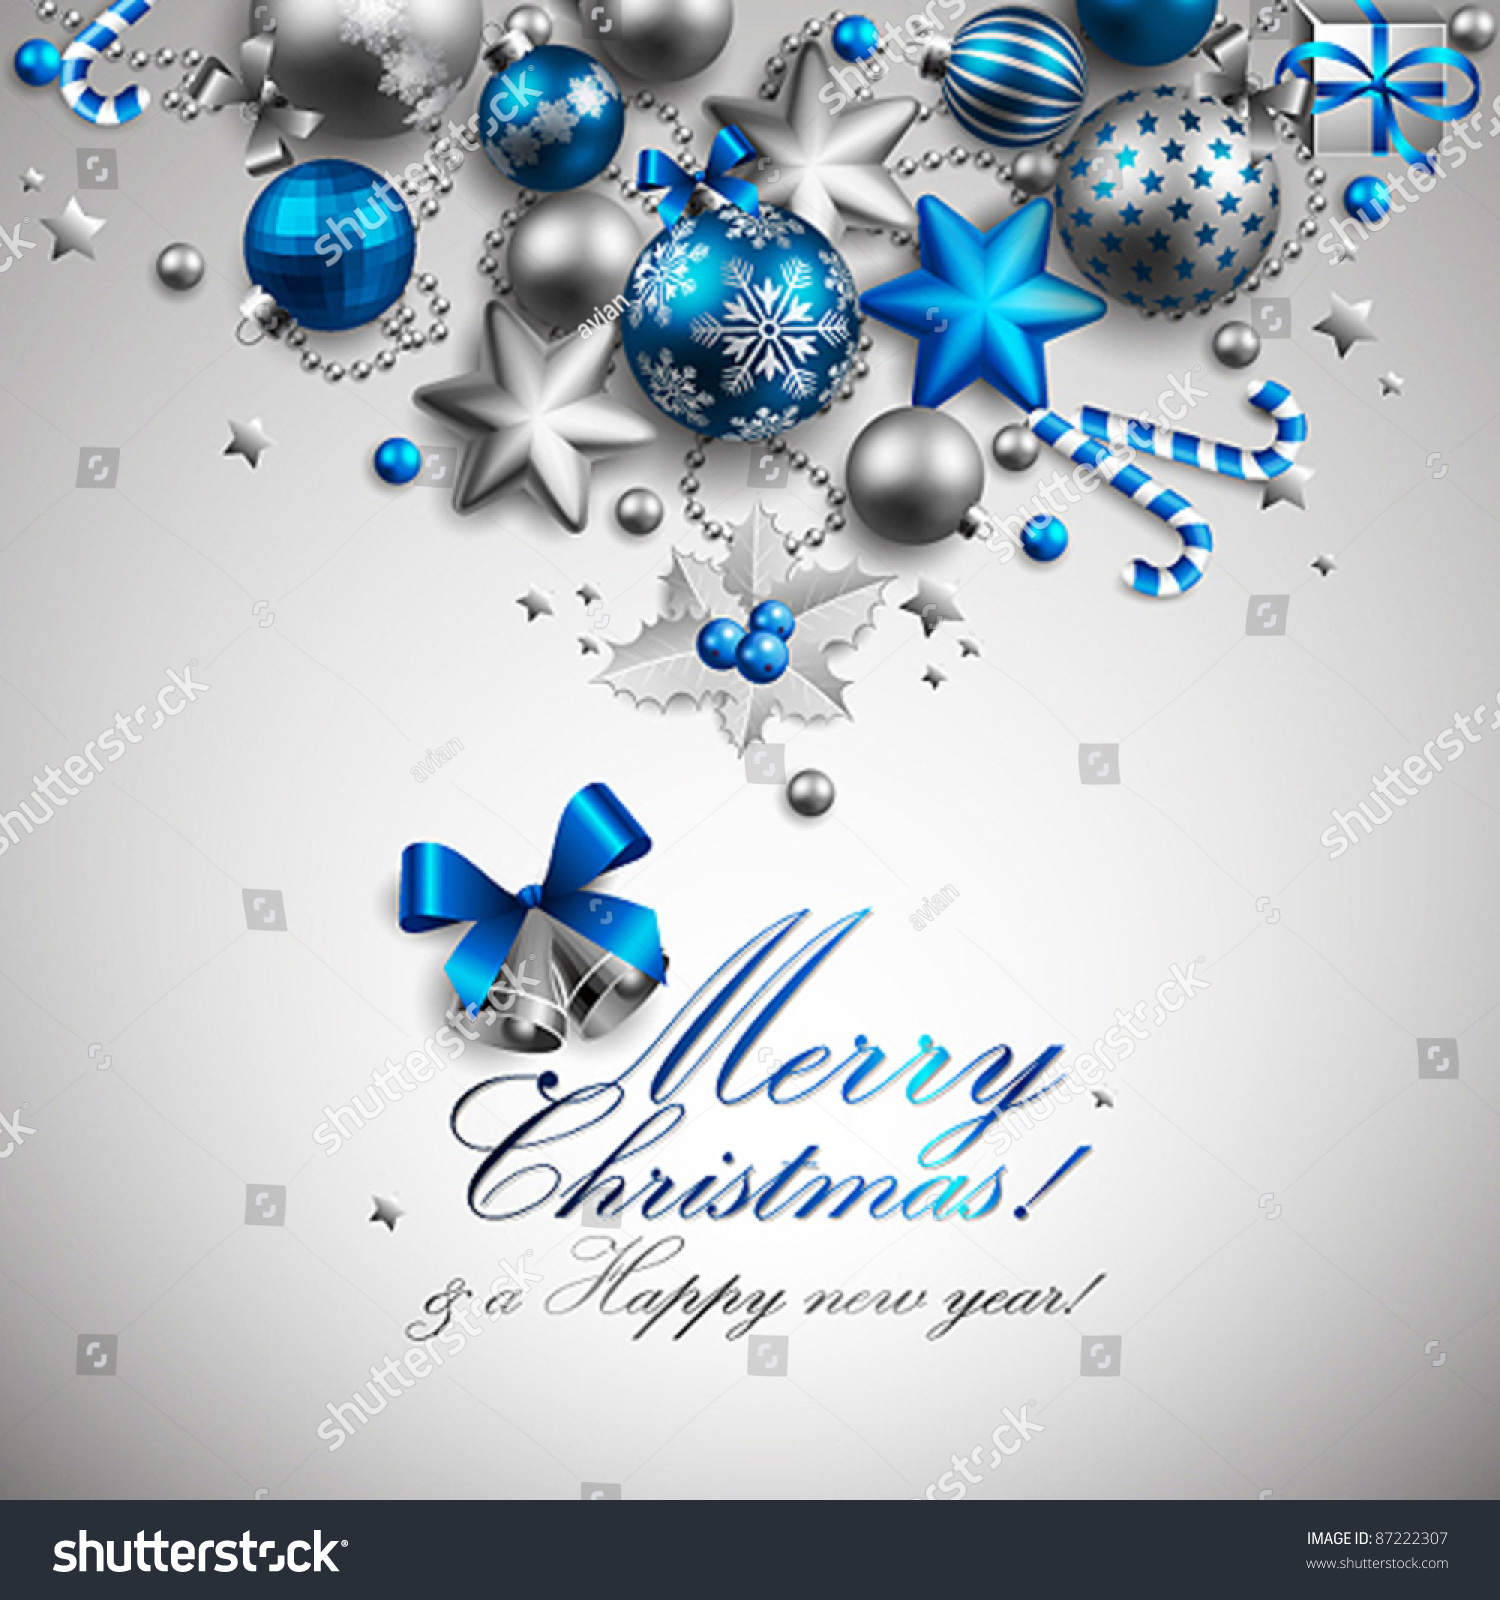 Beautiful Blue Silver Christmas Background Vector Stock Vector ...